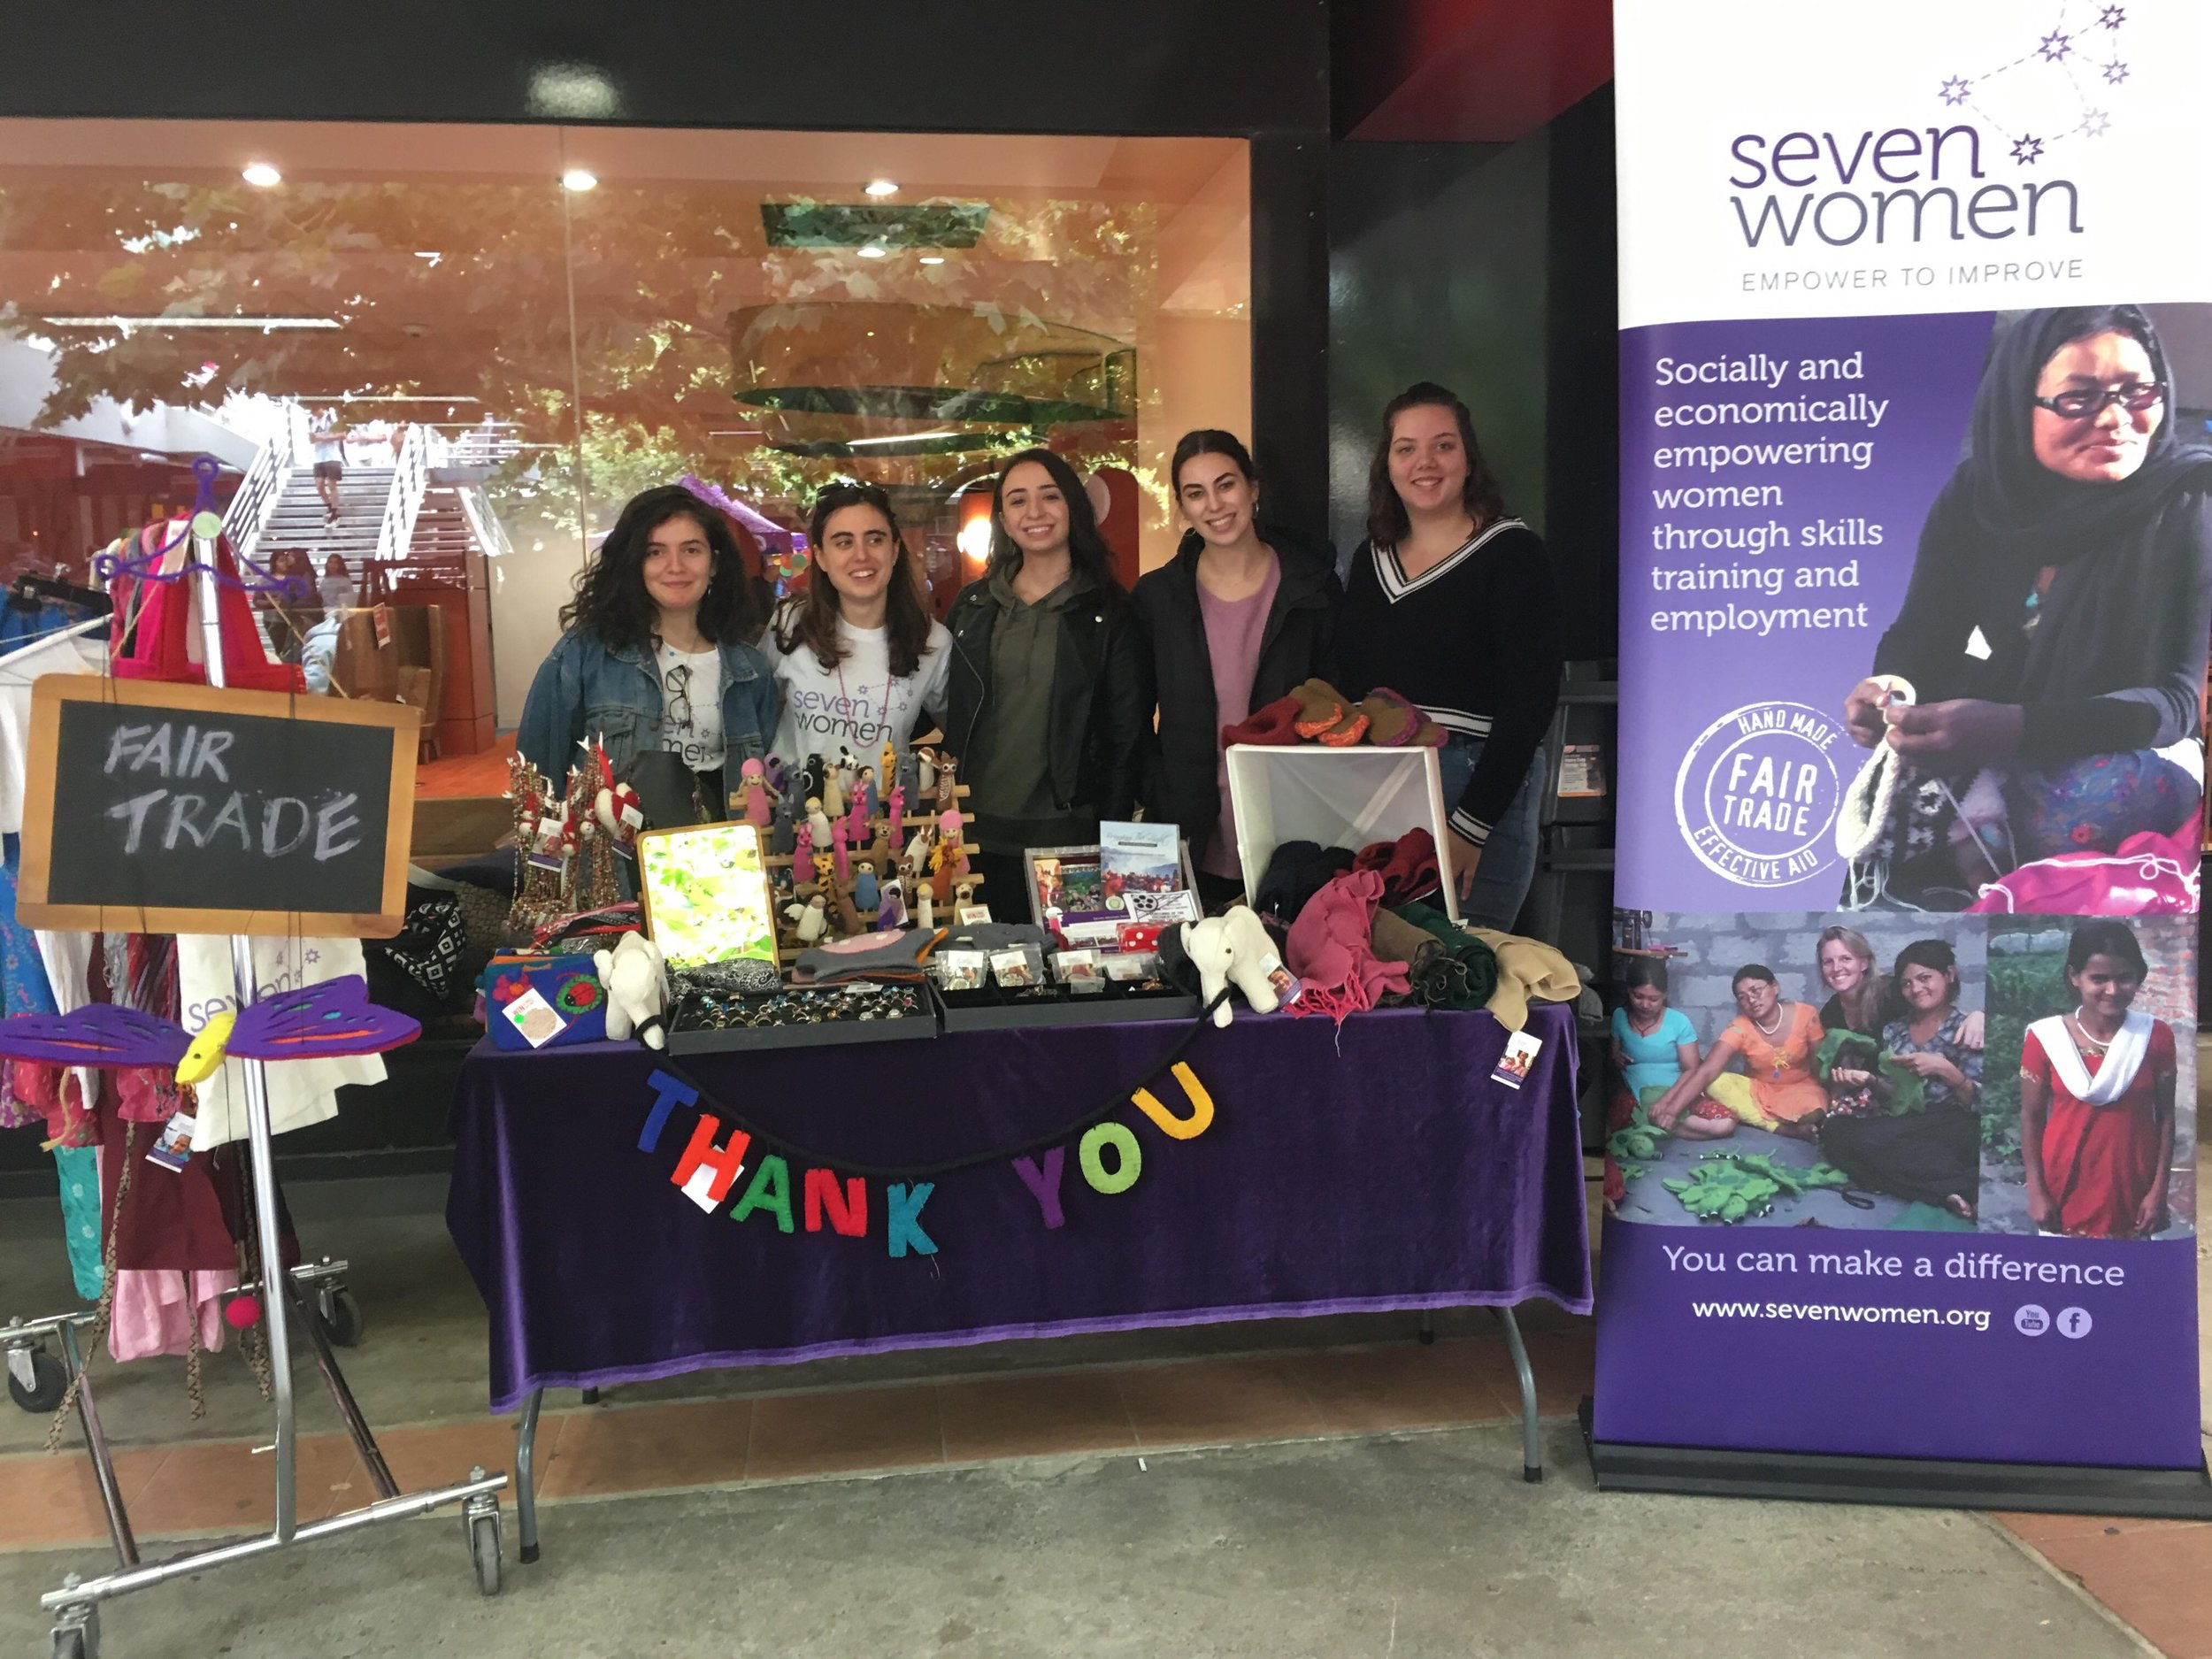 The Seven Women fair-trade stall at La Trobe University, set up every week by loyal volunteers